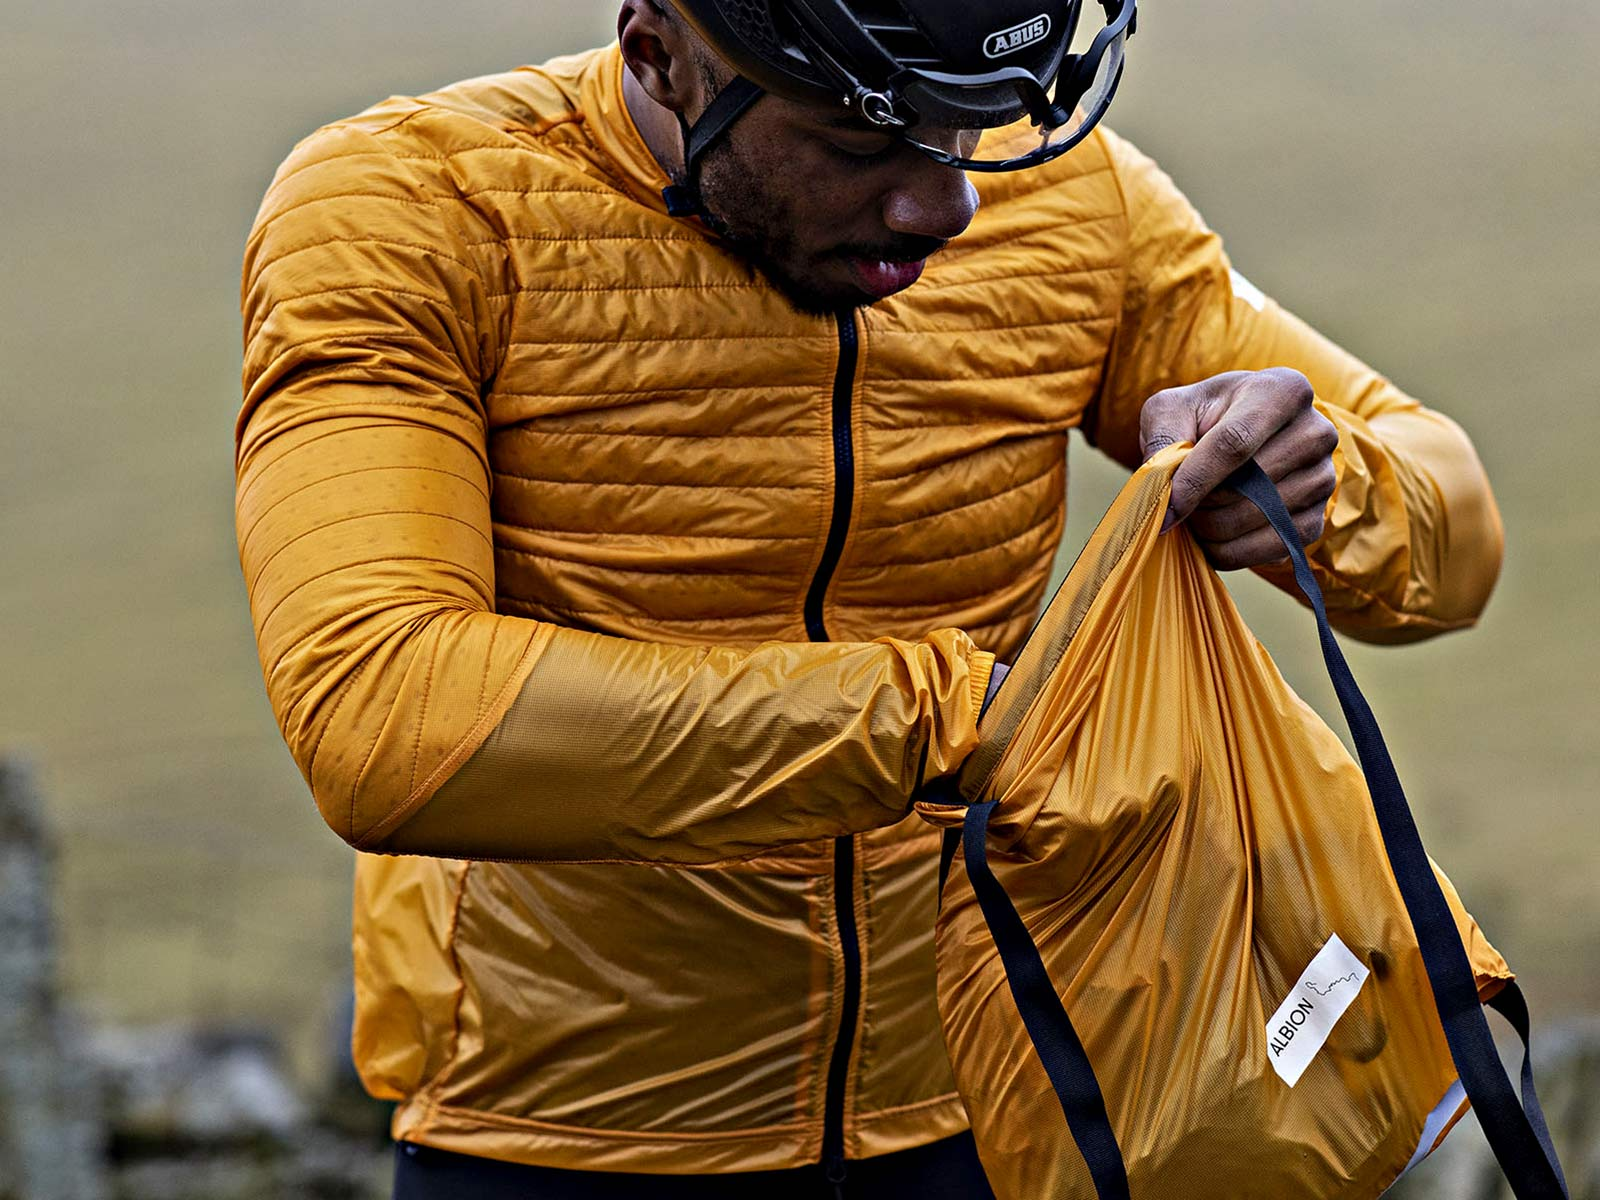 Albion Ultralight Insulated Jacket, ultra lightweight packable breathable eco cycling jacket and backpack,packing